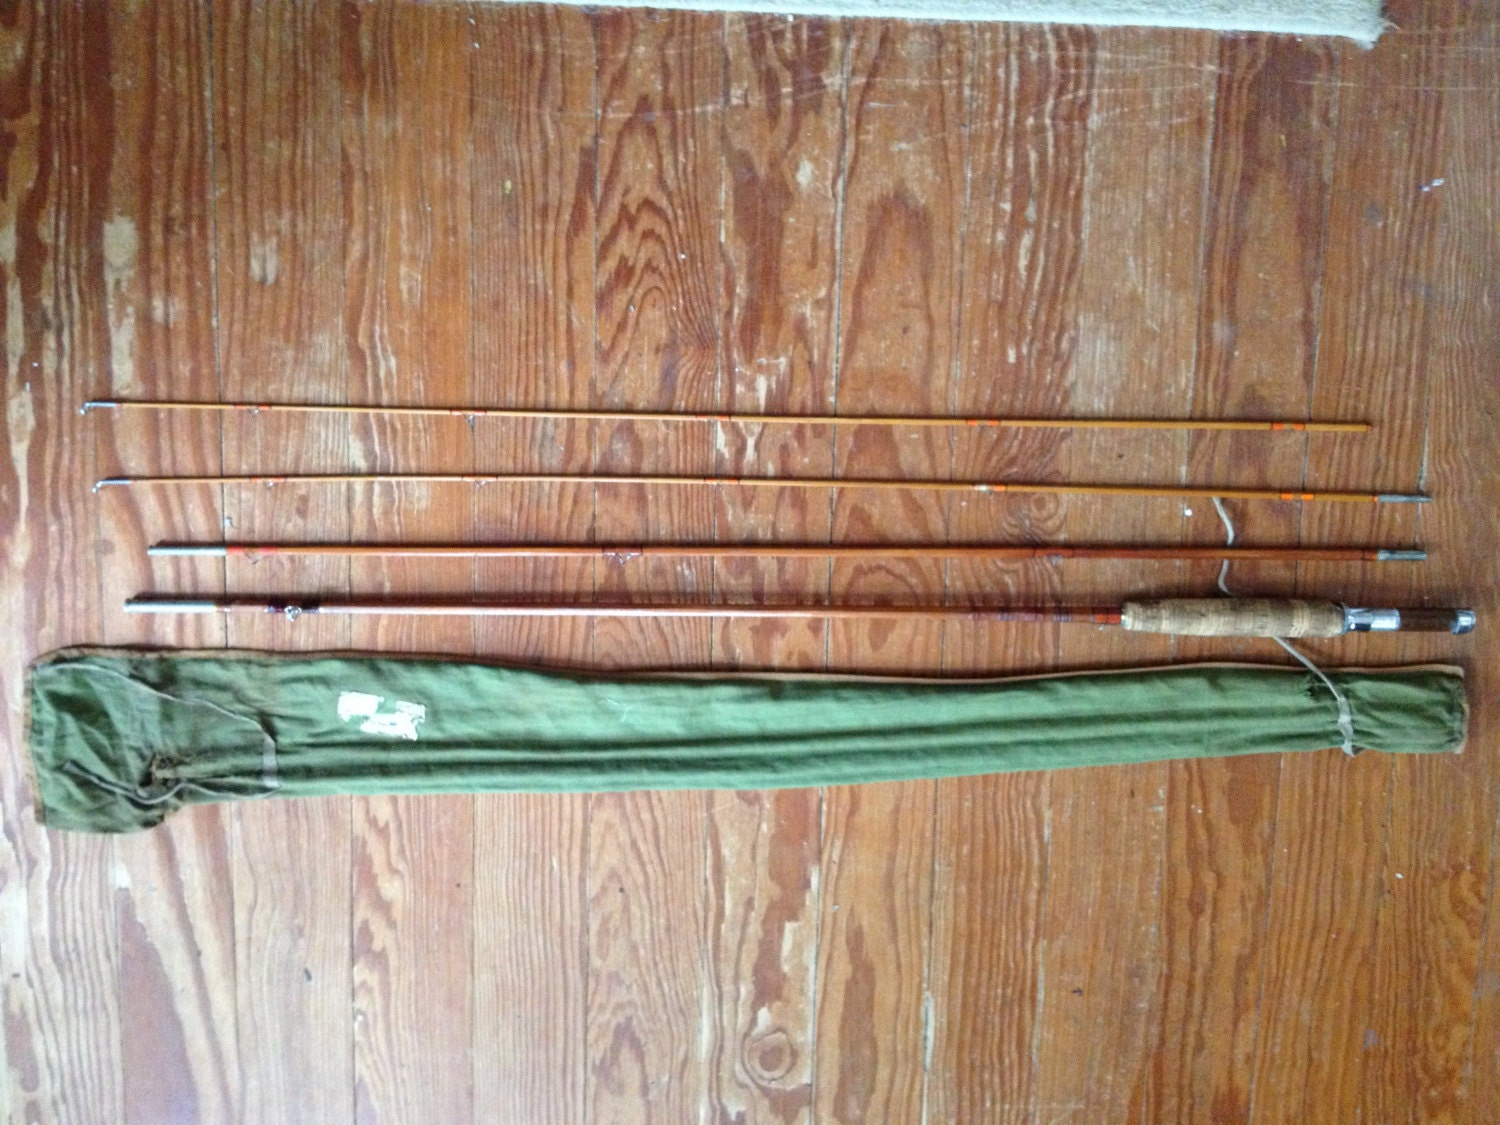 Split bamboo fly fishing pole made in usa for Bamboo fishing poles